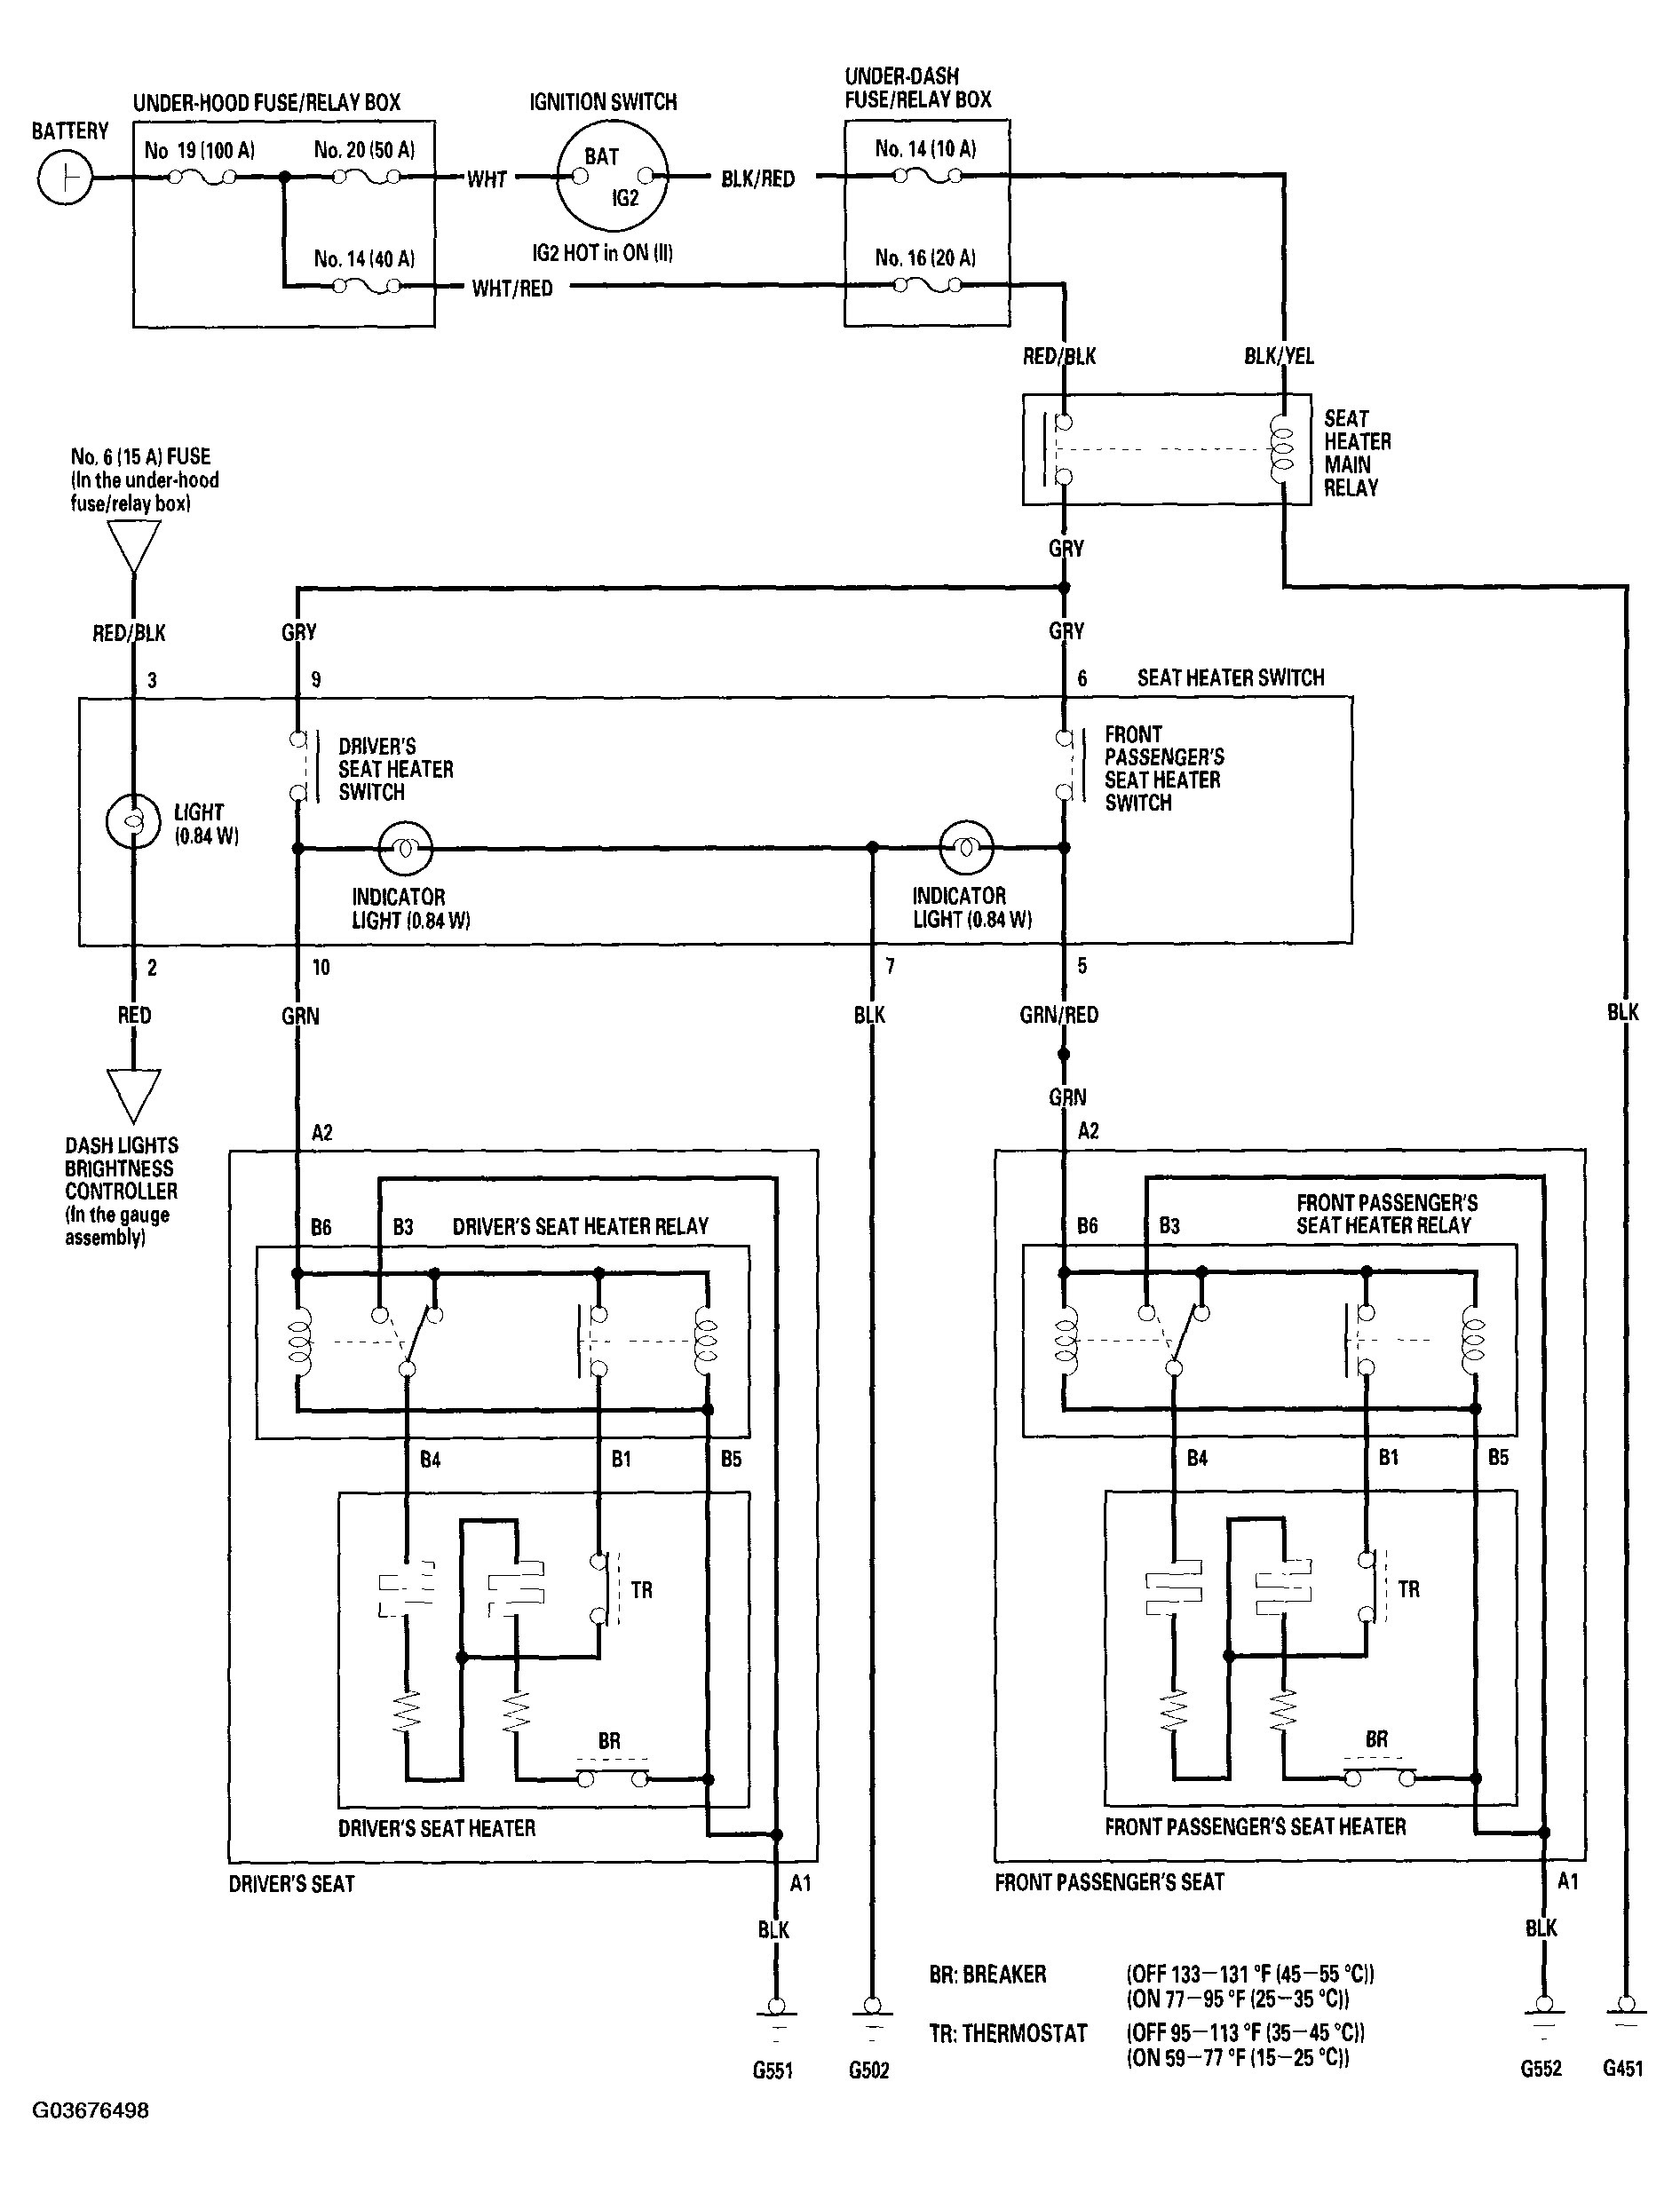 1995 Honda Civic Ignition Wiring Diagram